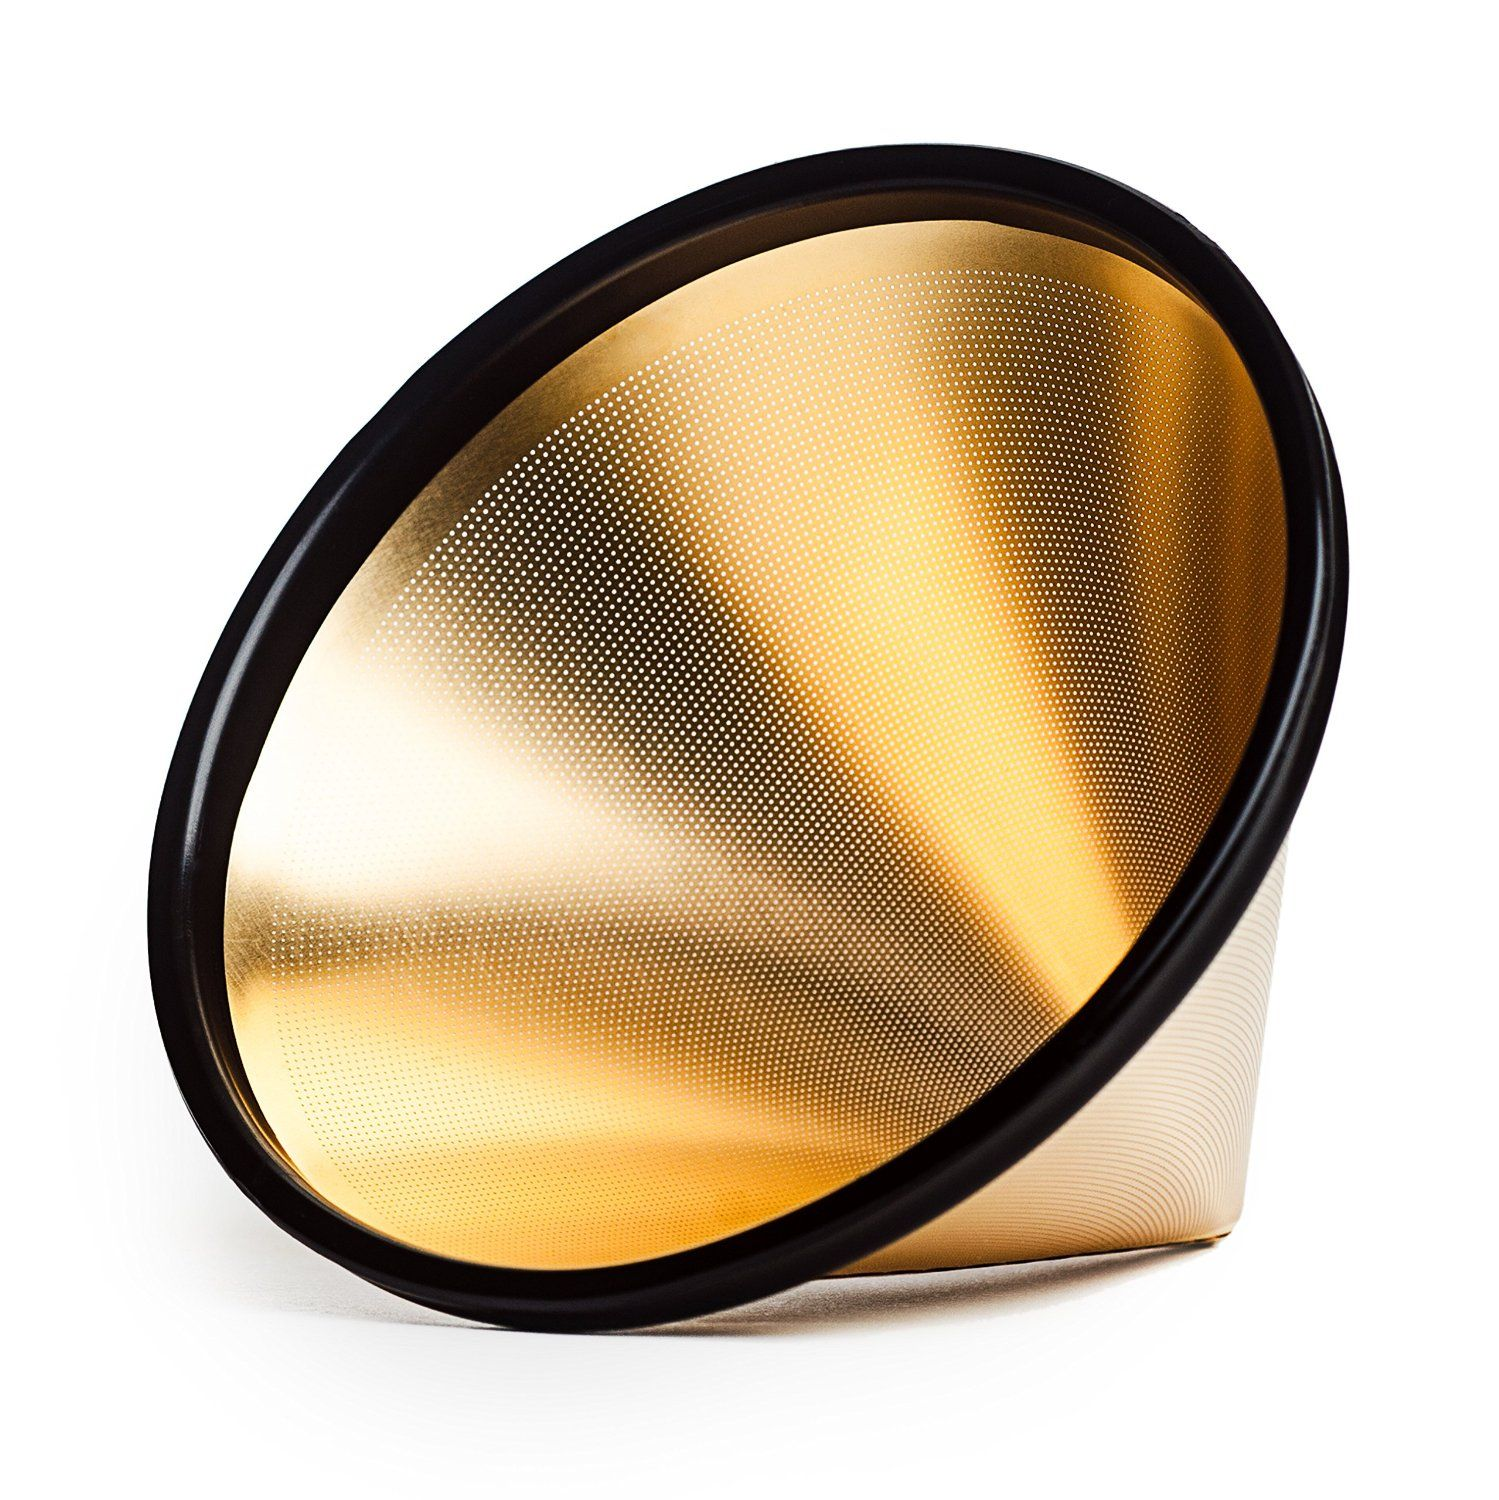 Amazon Able Brewing GOLD Kone Coffee Filter for Chemex Coffee